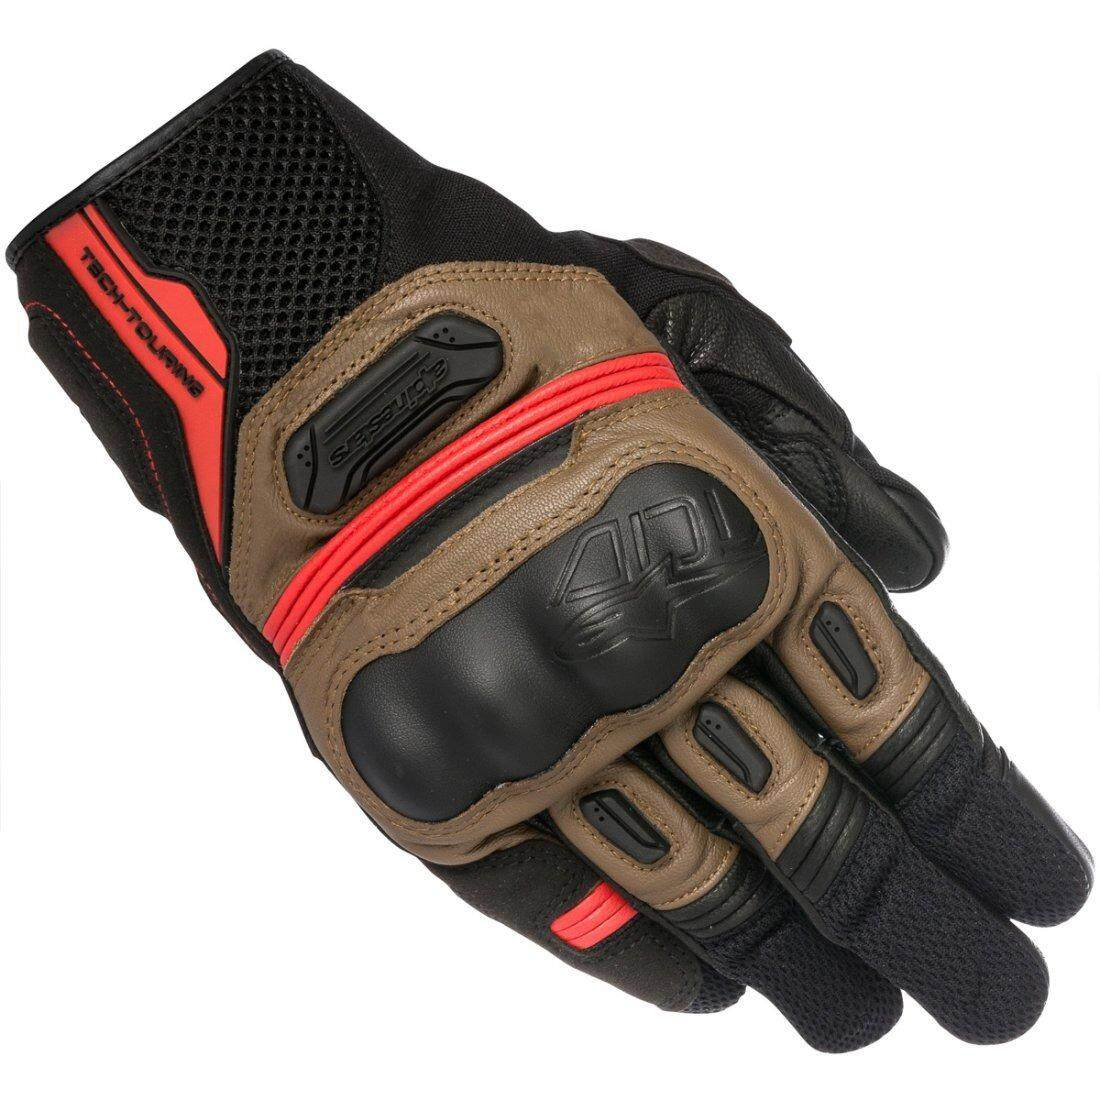 ALPINESTARS HIGHLANDS GLOVE (BROWN) - [ORIGINAL]